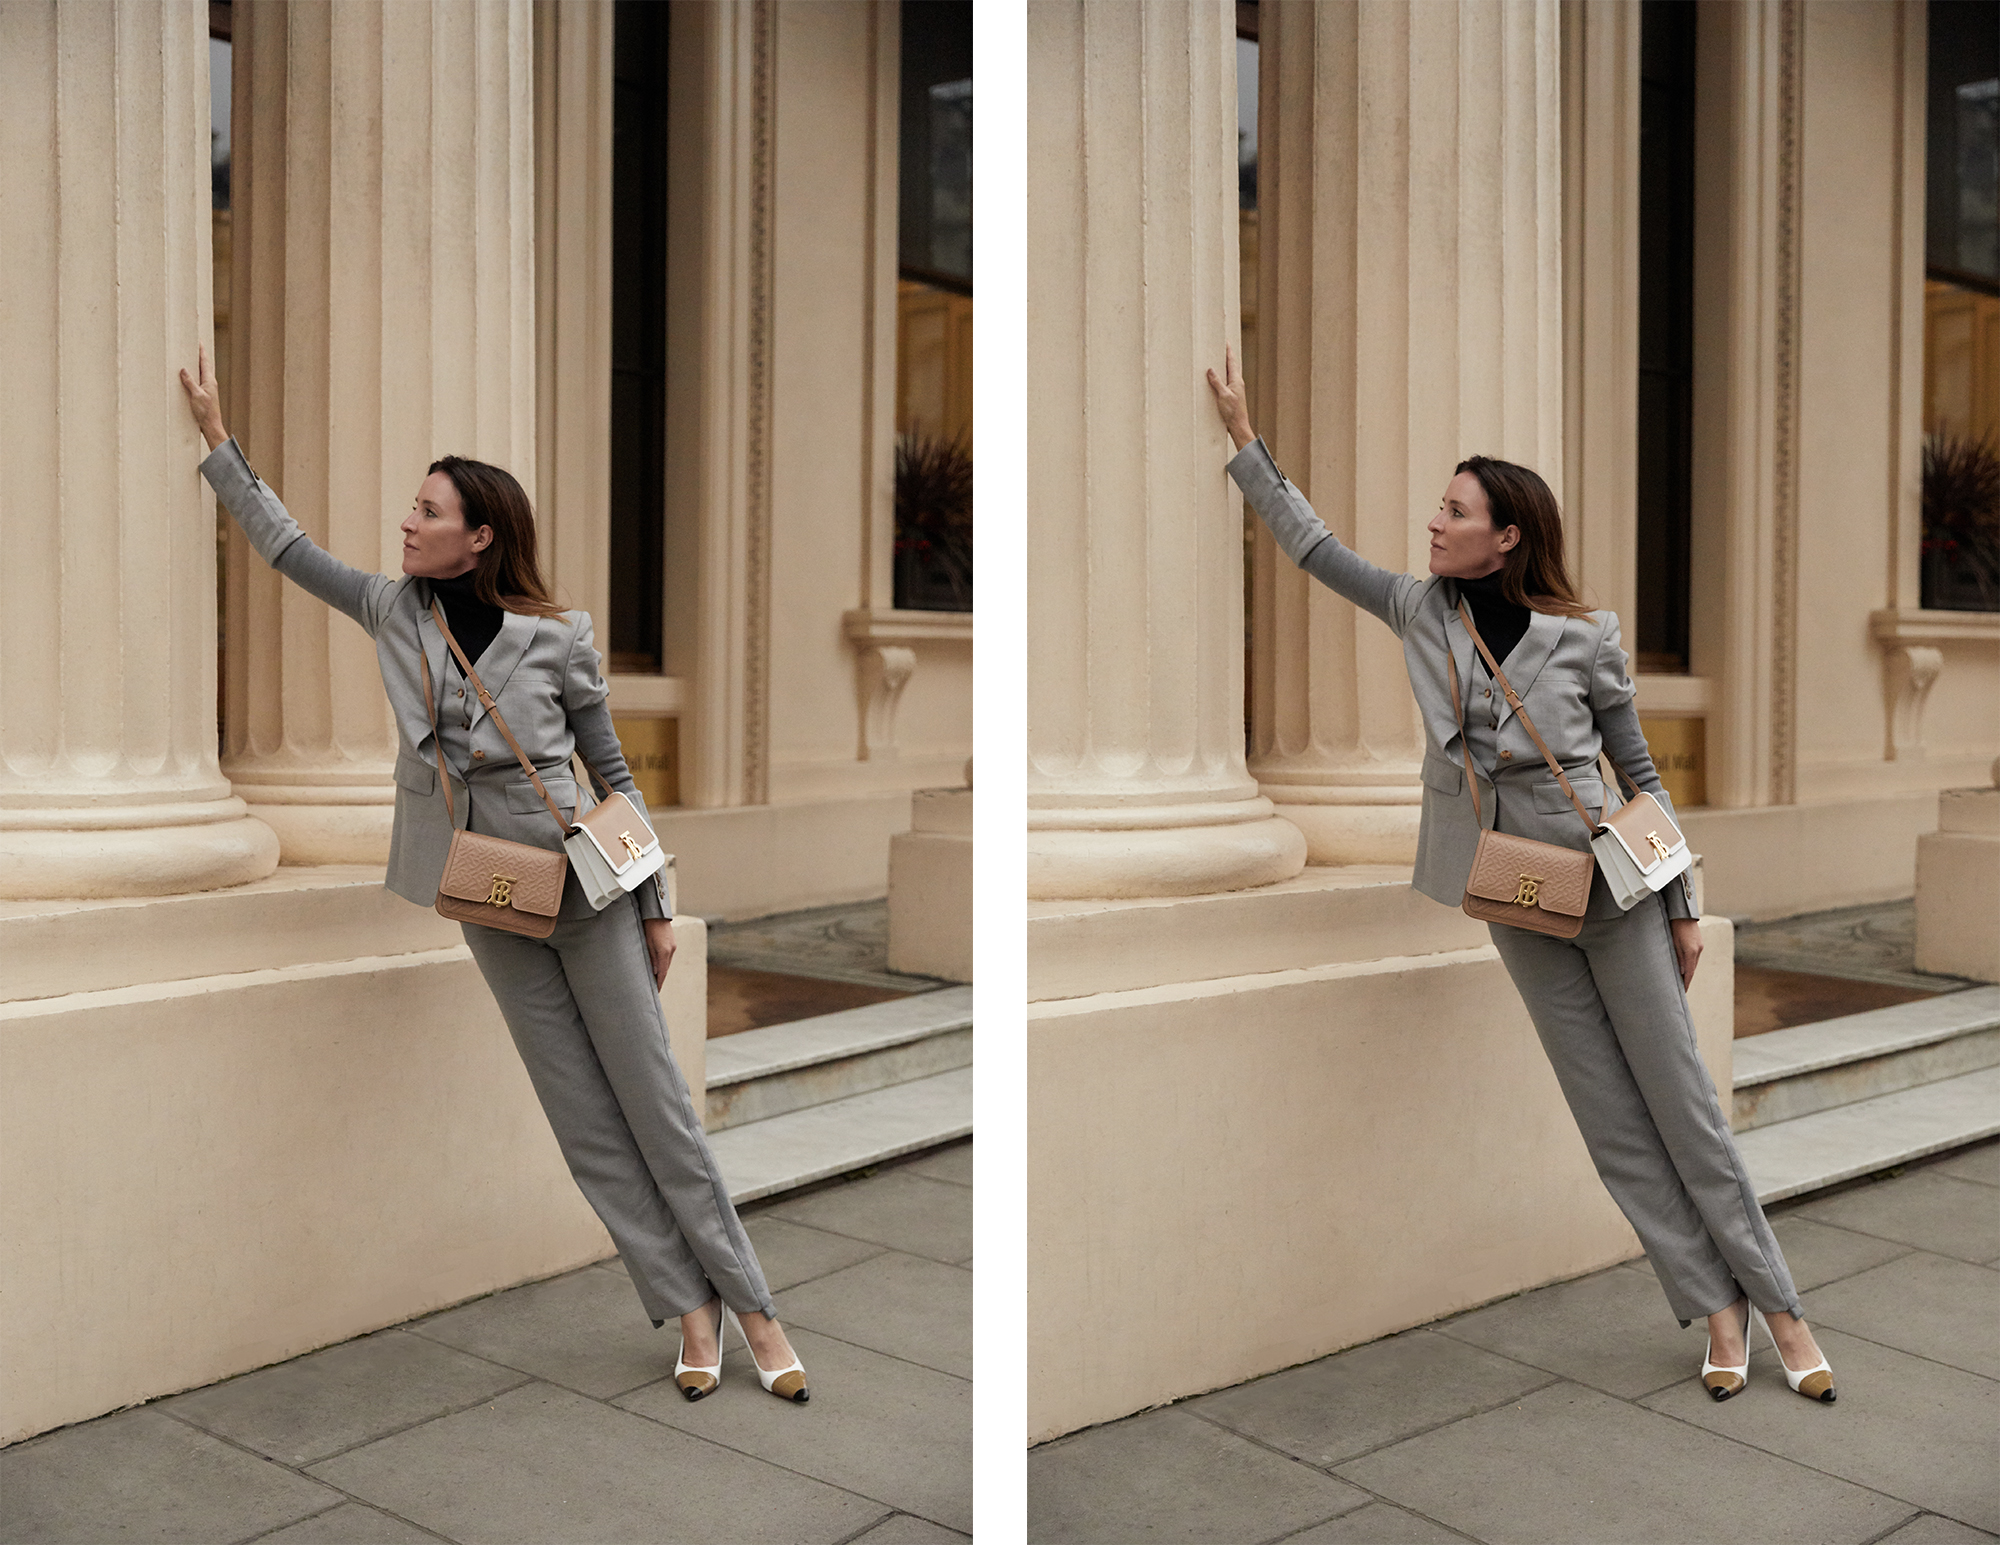 Burberry-Bag-London-Grey-Suit-Fashion-Street-style-Oracle-Fox